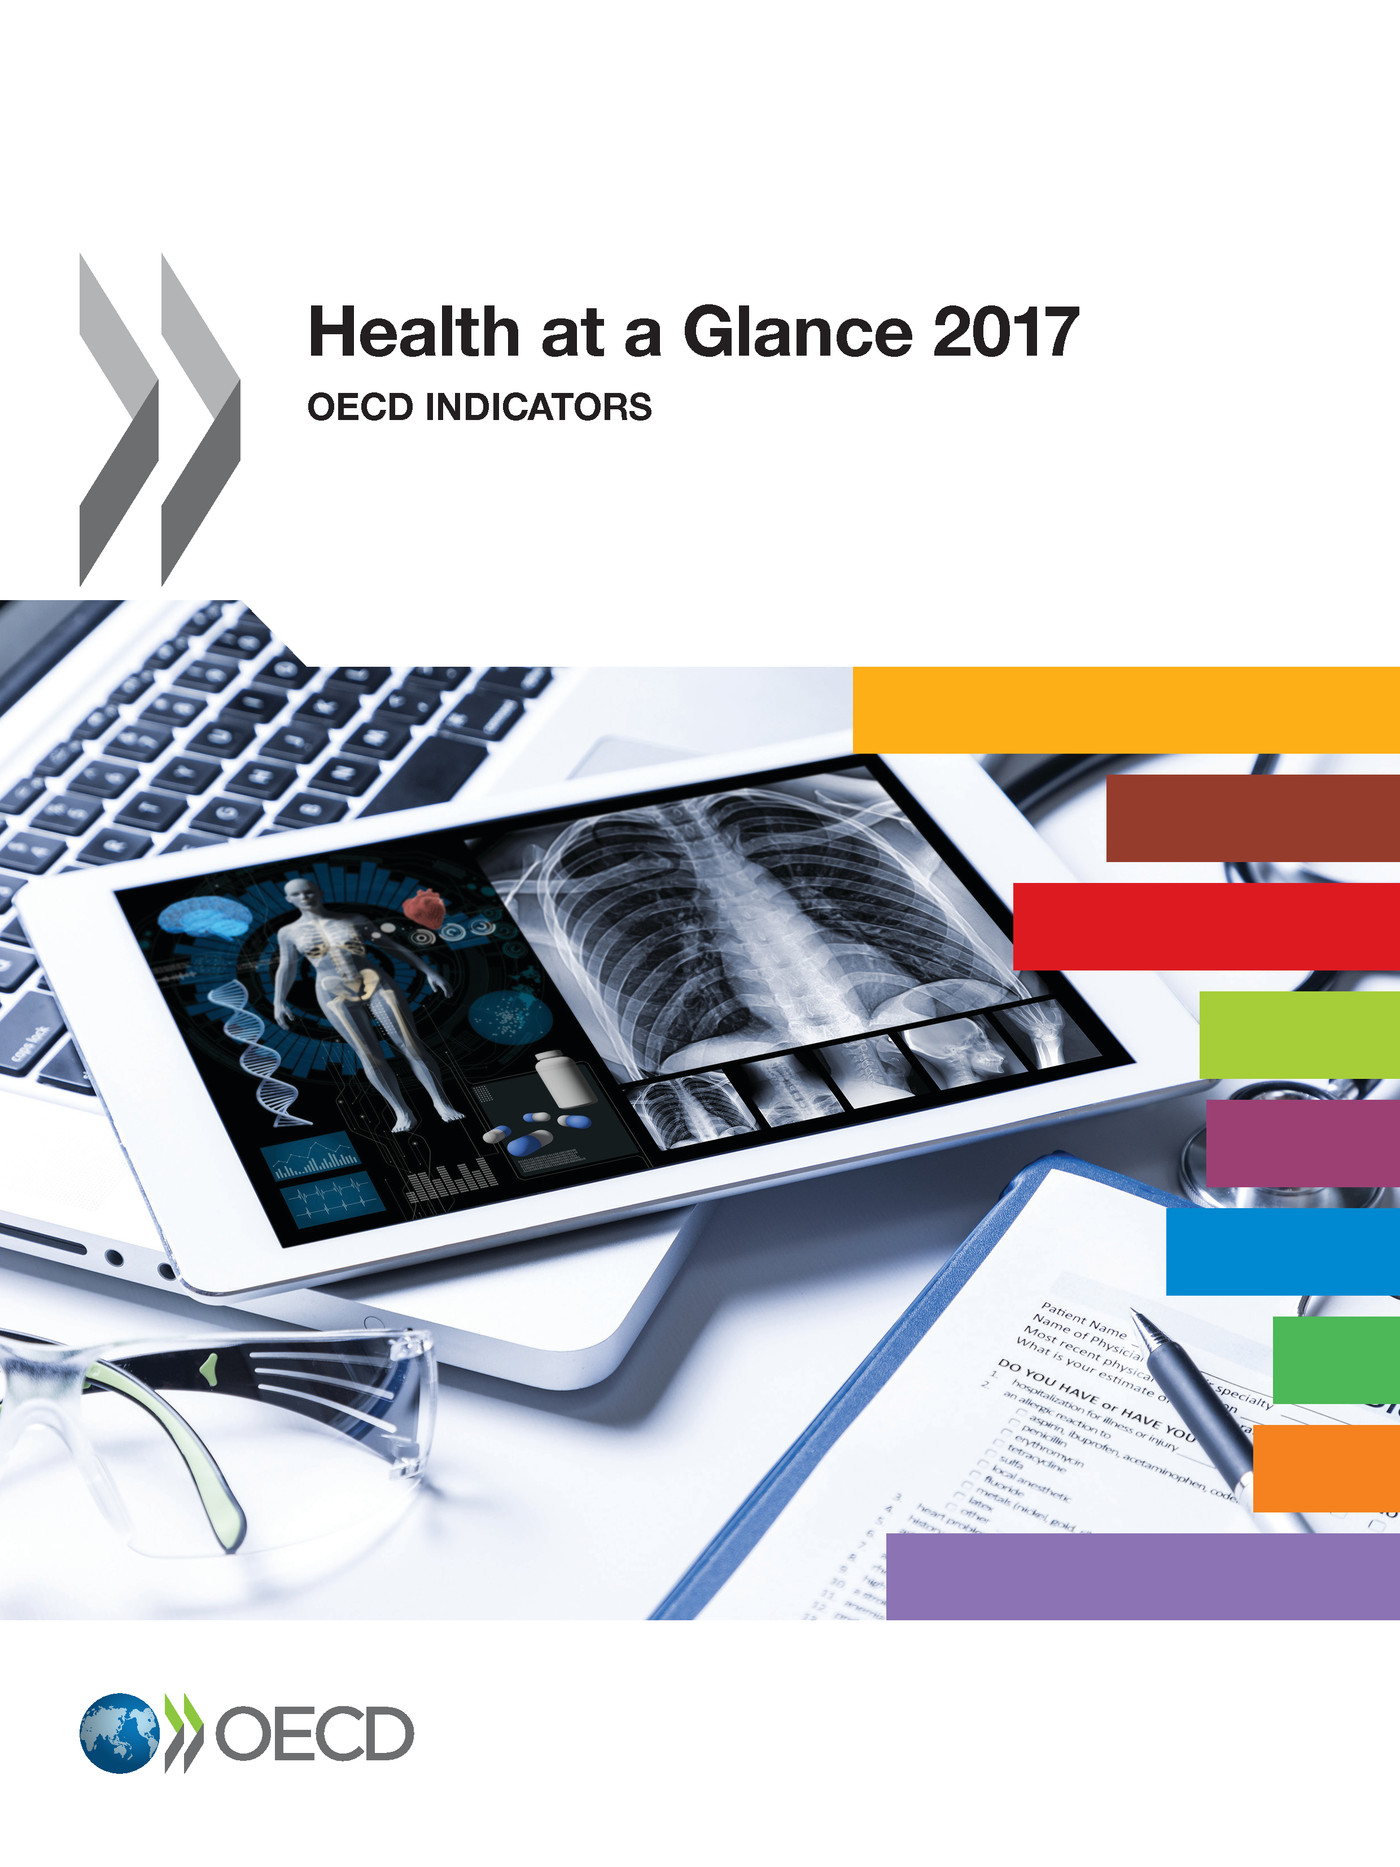 Health at a Glance 2017 De  Collectif - OCDE / OECD